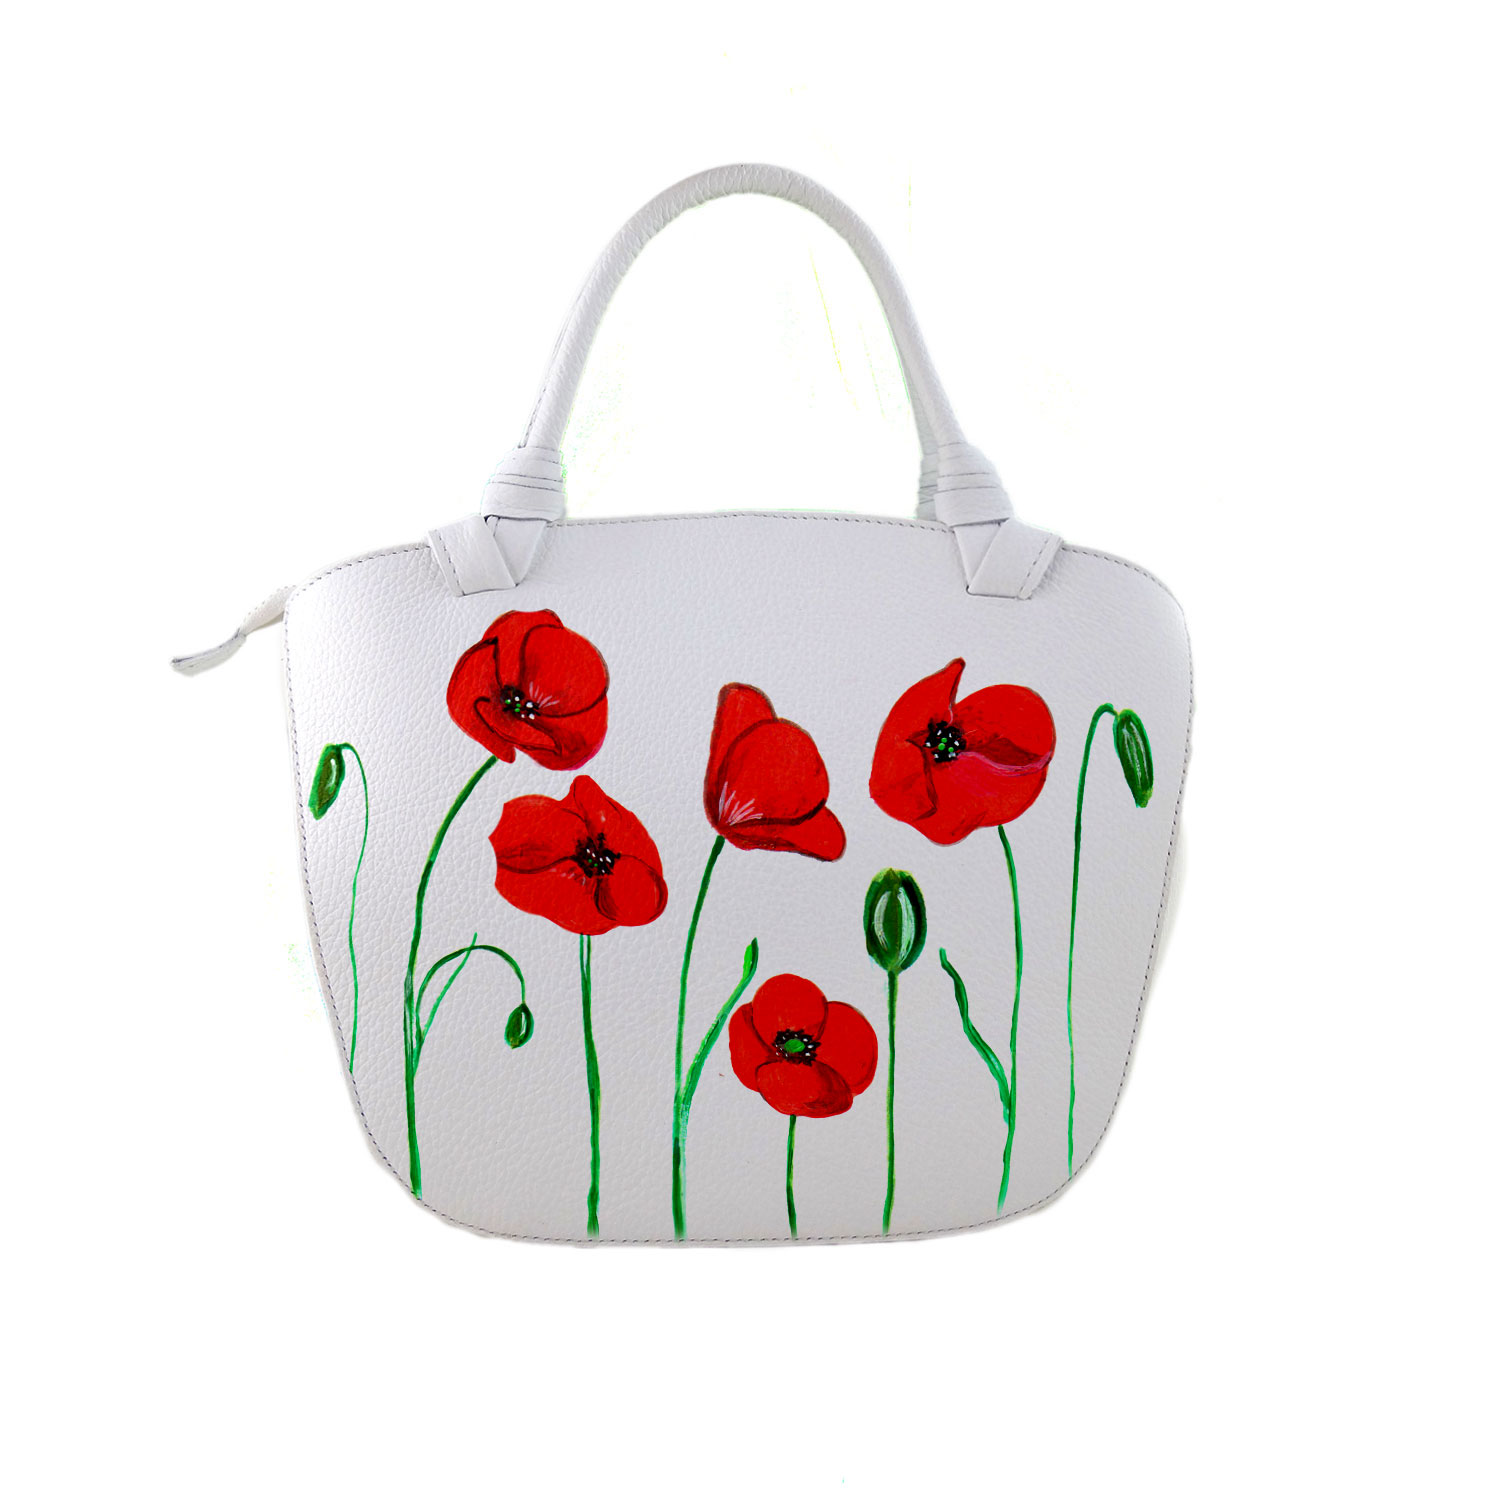 Hand painted bag - Poppies